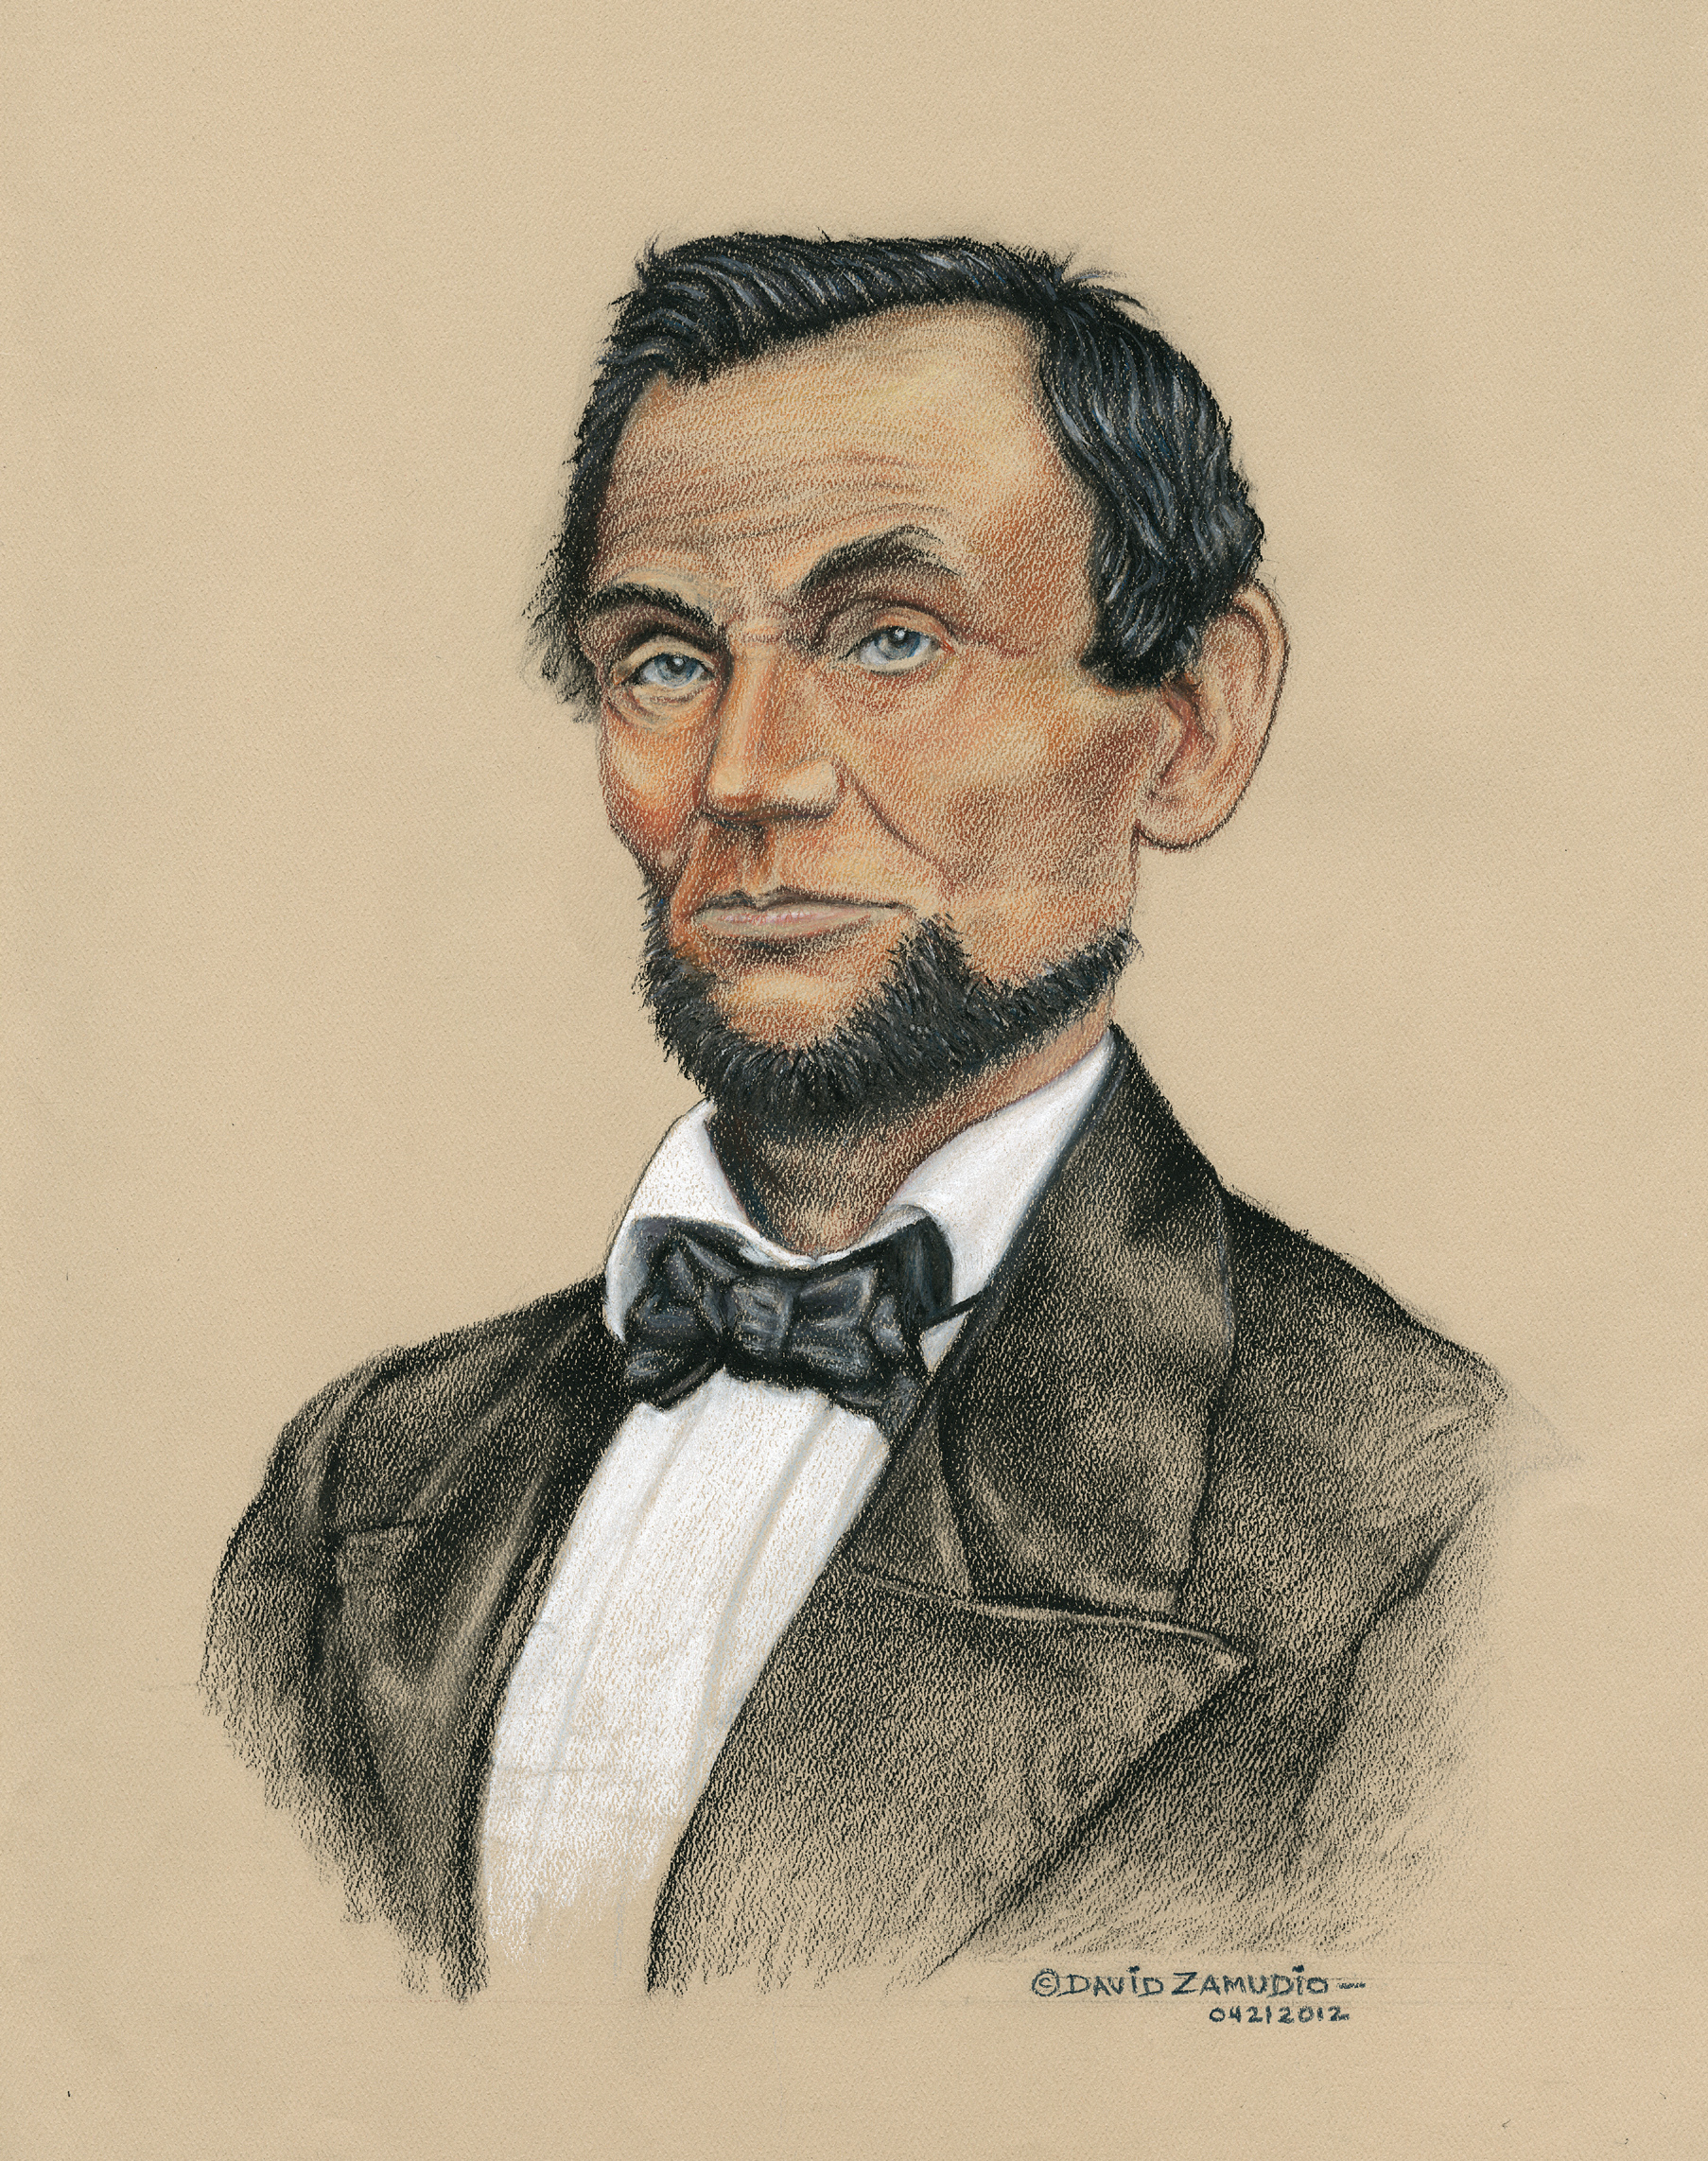 Pastel rendition of the famous US president Abe Lincoln